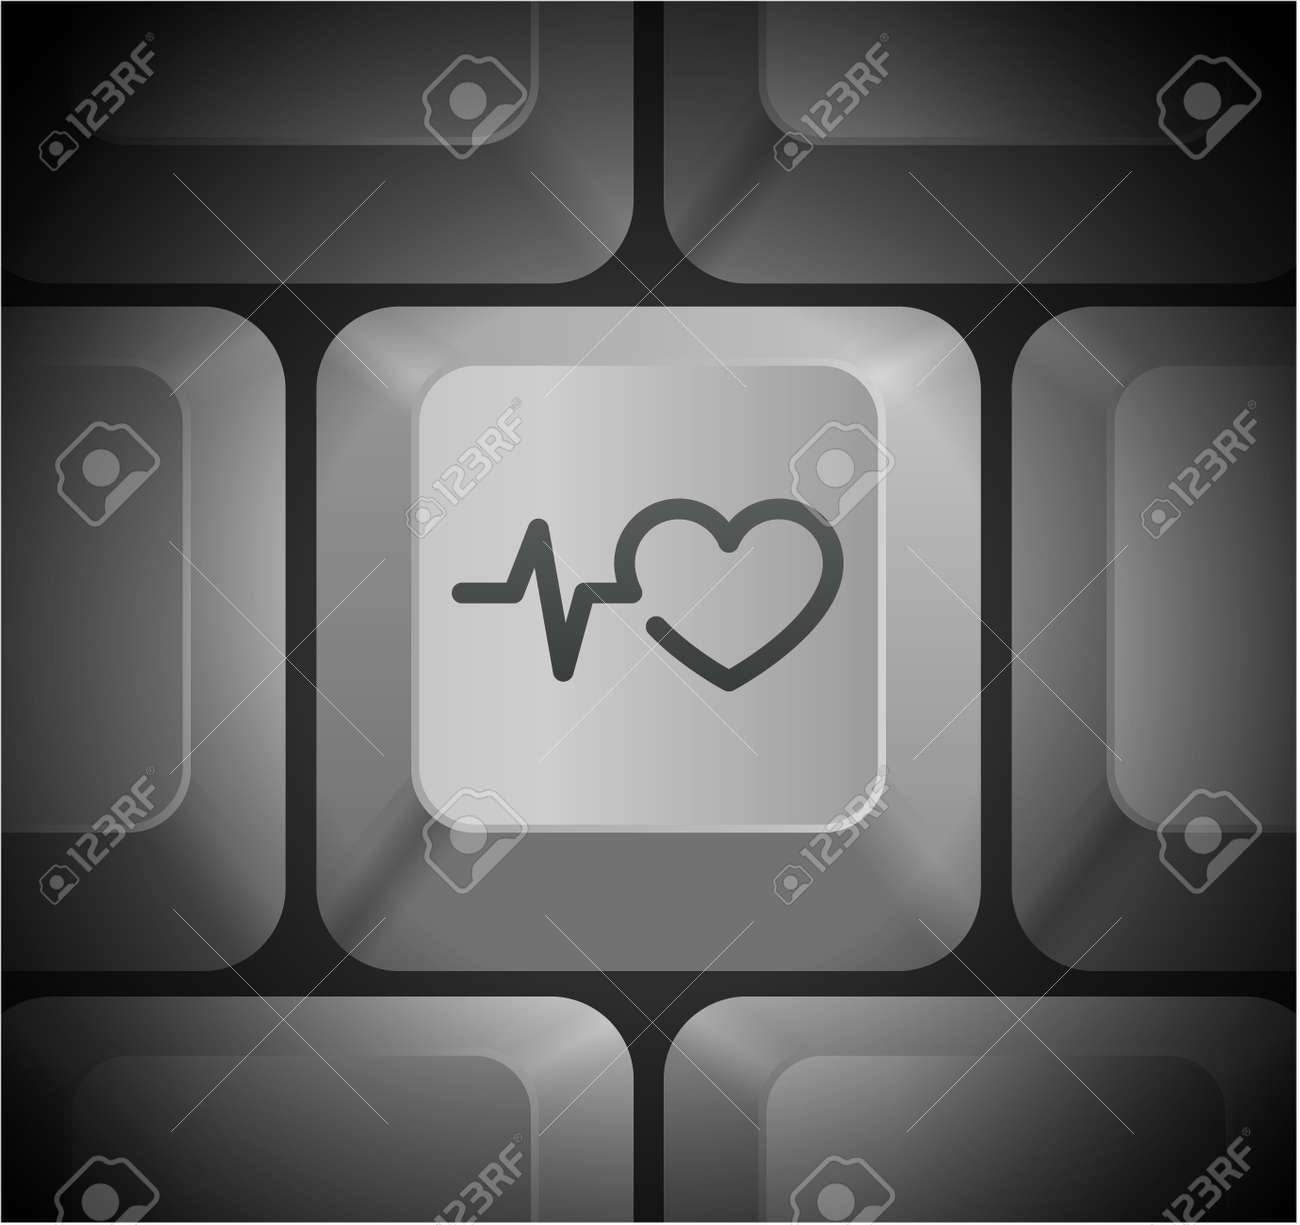 Pulse heart rate icon on computer keyboard original illustration pulse heart rate icon on computer keyboard original illustration stock vector 22360205 buycottarizona Choice Image